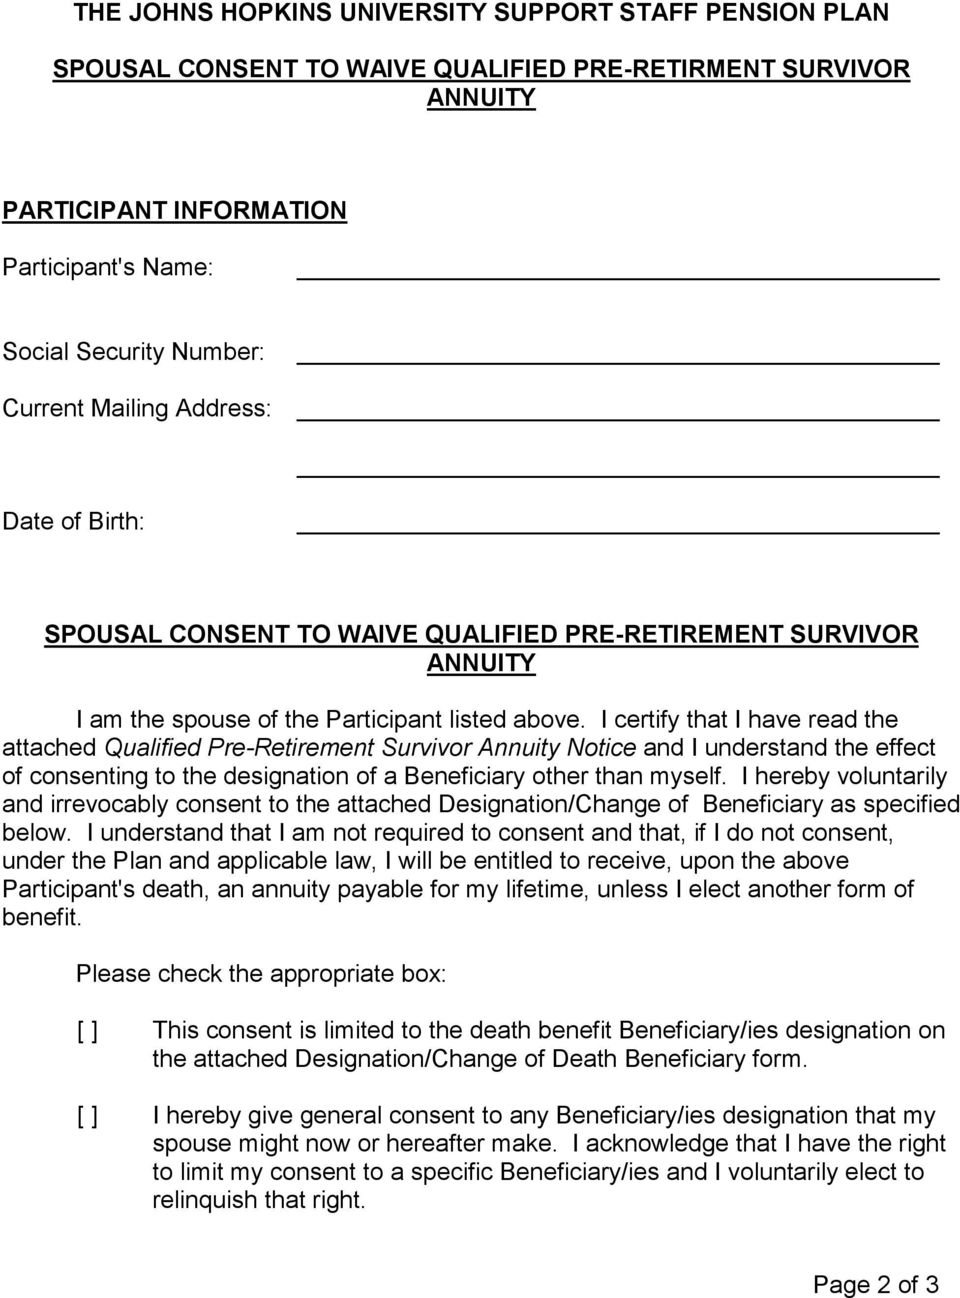 I certify that I have read the attached Qualified Pre-Retirement Survivor Annuity Notice and I understand the effect of consenting to the designation of a Beneficiary other than myself.